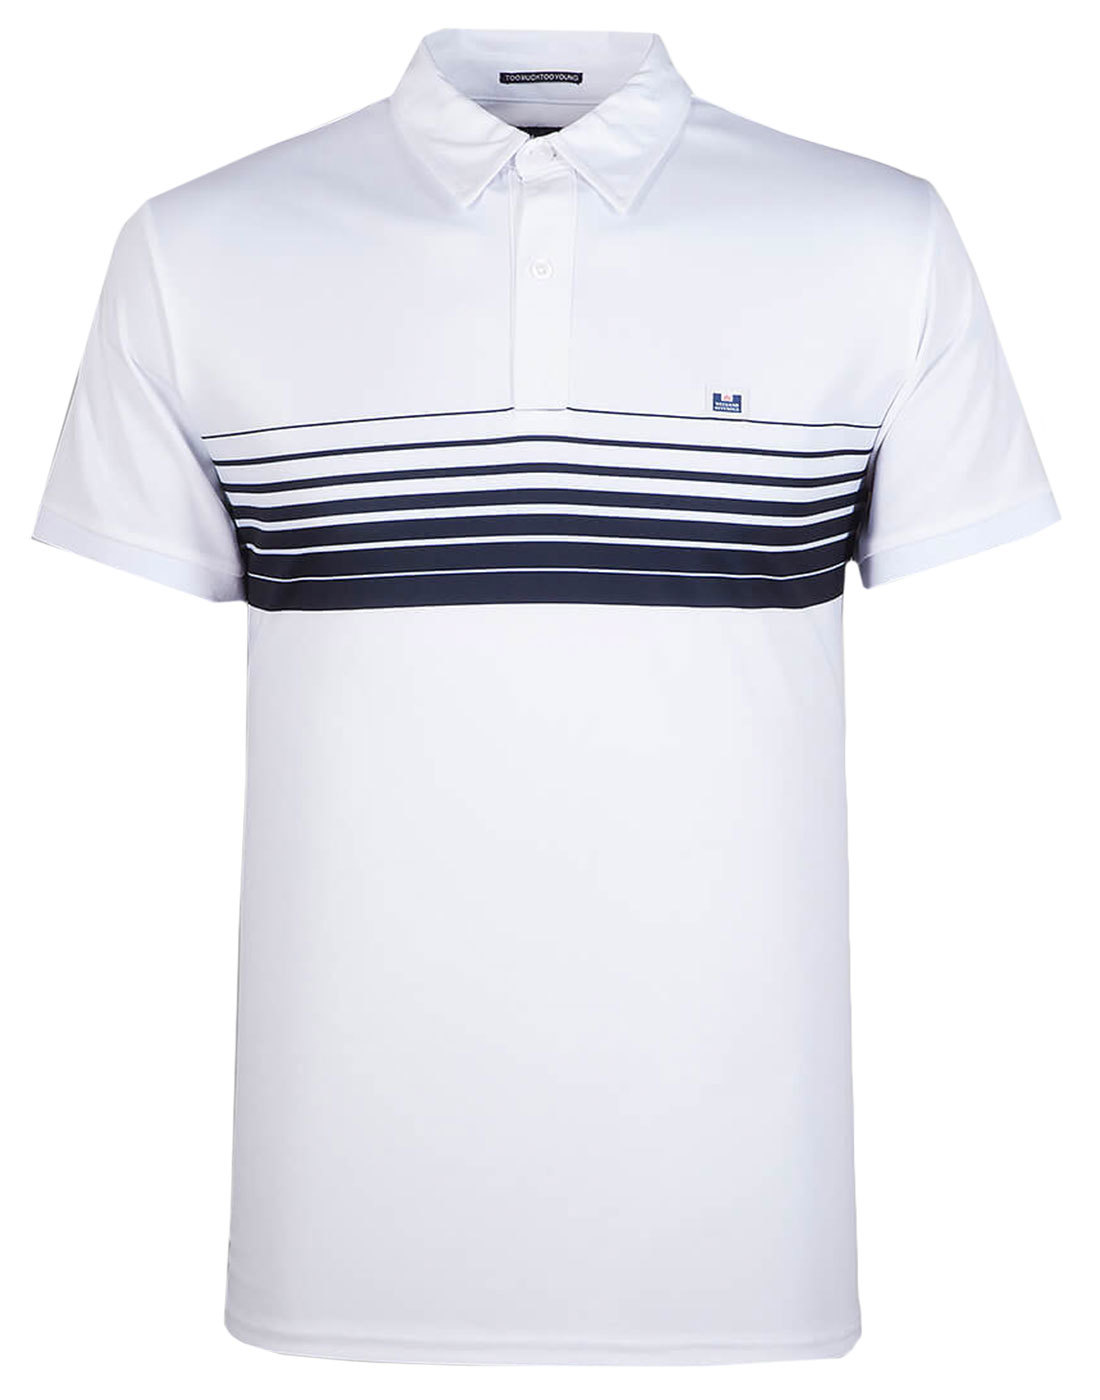 Batida WEEKEND OFFENDER Men's Retro Mod Polo Shirt